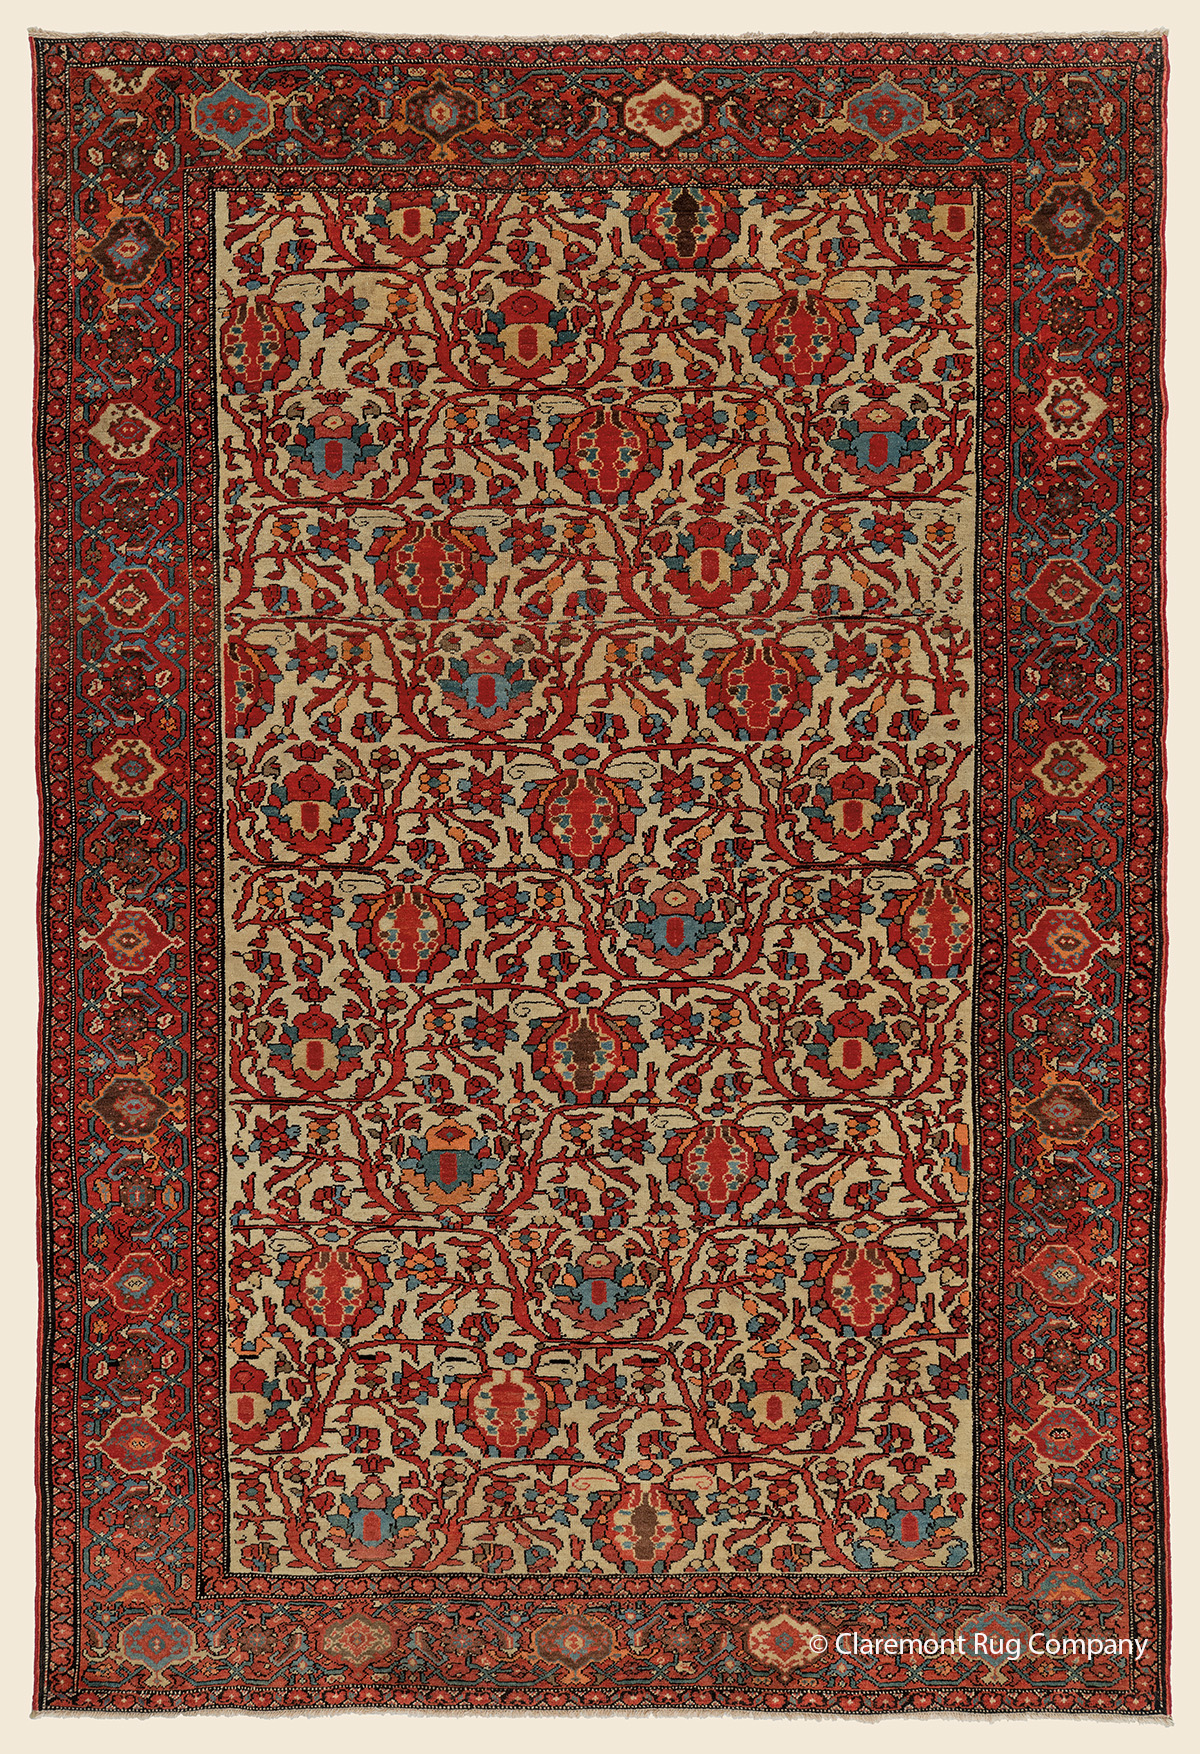 19th century Antique Persian Ferahan carpet with botanical design of blossom and fronds